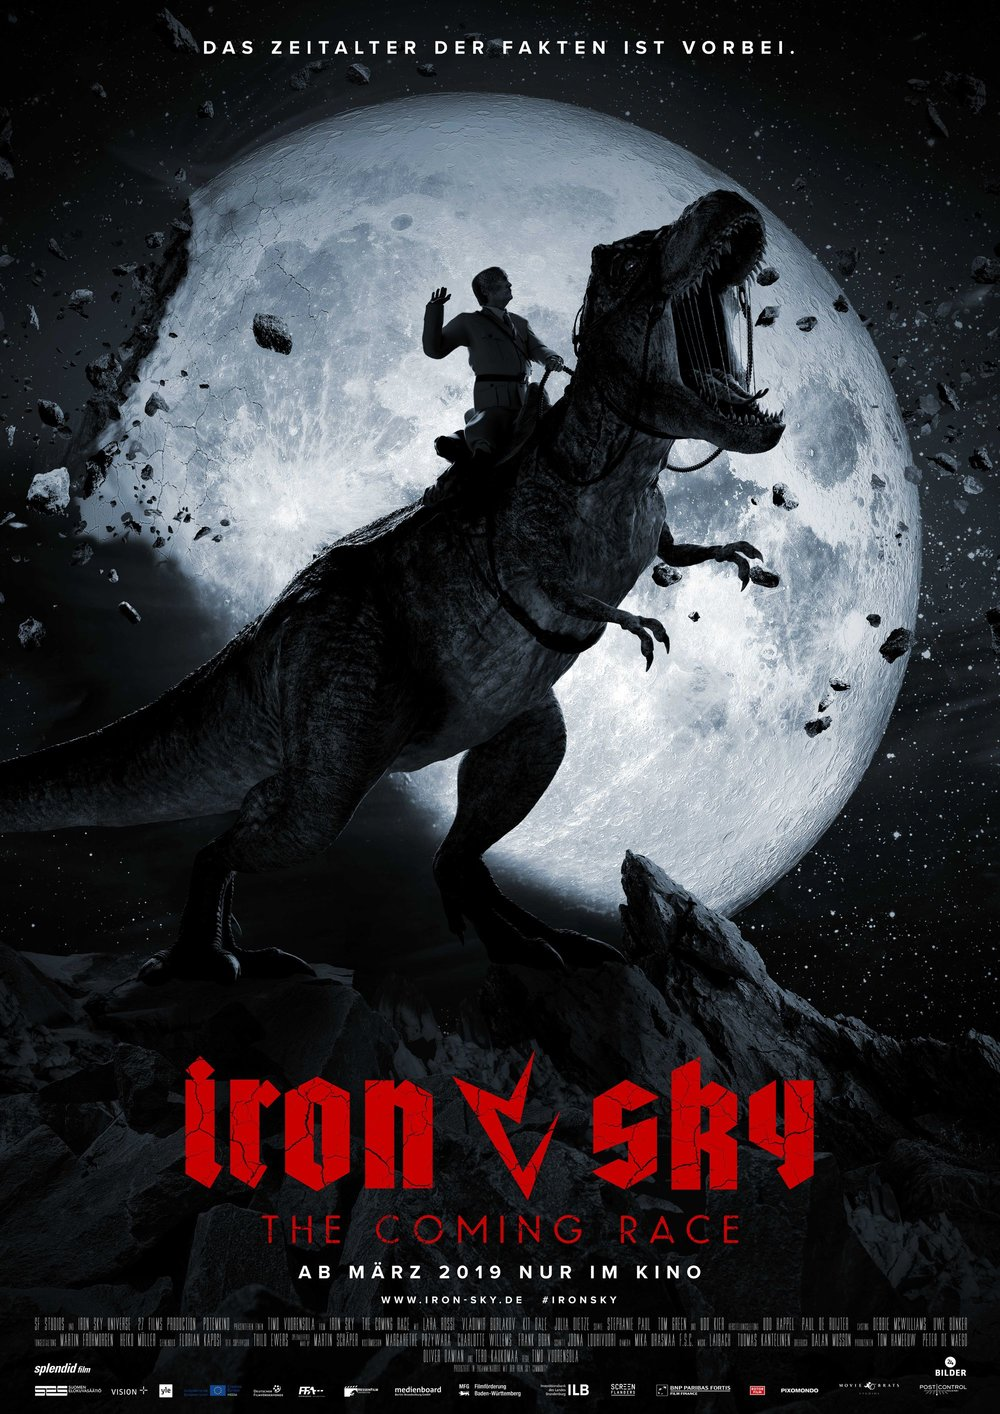 "Iron Sky: The Coming Race - by Arnór Hermannsson WikströmThis movie is what happens when a creator has no faith in their art. My main problem with the first Iron sky movie was that it didn't take itself seriously. I didn't mind it being a comedy, even though the teasers had promised a much more serious tone, but it seemed to me as if the creators of the film had so little faith in their subject matter that they buried the film under a layer of silliness, just so they could vindicate themselves by saying ""I know it's dumb! It's supposed to be dumb!""However, Iron Sky did gather a cult following, and a sequel was very much in demand by its fan base, so the crowdfunding began anew, and with a bigger budget and more reason to believe in themselves, Iron Sky: The coming Race was grinded out.This film took five years to make. The first teasers dropped in 2014. I went in to the theater hoping to see that the creators had used this time wisely, smoothing out the crinkles and making a solid story.Not only does Iron Sky: The Coming Race not believe in itself, it seems positively ashamed of its own existence. The scenes are played out with such camp and tomfoolery it sometimes feels like you're watching a children's show with gore. No scene is played straight, they all feel like they're desperately winking at the camera to remind us that they know they're making a stupid film, and a problem with the film having taken so long to make is that the reference humor is so dated it's gone sour. The film opens with a scene of an american president who is clearly modelled on Sarah Palin, and that just feels weird, since it's been eleven years since she ran for vice president alongside John Mccain, a race that they famously lost, which makes you ask the question ""Why are you reminding us of a person we haven't given a shit about for over a decade?""The film's scenes seem to fluctuate in budget. Some scenes look like they're from a low budget kids' show, others look positively stunning, look out for a great scene with lizard Hitler riding a T-Rex named Blondi (which was the actual name of Hitler's german shepherd).There's a scene in a cockpit, when the heroes are crashing to earth, where the two main characters play off of each other nicely, but where the filmmakers seem to have completely forgotten that there are actually supposed to be four other people on board.Anyway… the film also suffers from the wooden acting of its leads, especially since it's trying to pass itself off as a screwball comedy, and none of the lead actors have any comedic talent. Main protagonist Obi, played by Lara Rossi, is a straight-faced no-nonsense action movie type that sadly feels out pf place in a film where she should've been perfect, had it been handled correctly.The great Udo Kier does his best, and his returning Moon-Führer narrowly saves most of the scenes he's in, but sadly that's not his only part in this film.He also plays a lizard Hitler, and seems to lose his mind completely in that getup, as if the concept itself is so weird that he desperately needs to overreact to keep up with all the silliness going on around him.One of the best characters in the film is a stone-faced cult leader played by Tom Green, who surprisingly gives the most serious performance of the entire film. Green plays every scene with real presence and gravitas, being remarkably funny with his deadpan delivery.What takes you out of the film the most is not the acting, or the dated references, silly humor, or sometimes pathetic CGI. It's the script. Especially the back story.The only thing Iron Sky: The Coming Race has to stand on is a pretty weak previous film that still works if you're willing to look past its most glaring faults, but the sequel adds background details that pretty much retcon the entire story of the first film, making the connection between the two movies nonsensical and fragile, so much so that it comes off as a completely stand-alone film that just so happens to star some of the same characters.It's almost as if the creators of this film decided to throw so much stuff into the mix that you would be too confused to see that they had made a bad film.But that is ultimately what Iron Sky: The Coming Race is. A bad film. In almost every sense of the word.Sure, there are some funny jokes, some memorable scenes, and at least two very hard working actors doing their best to carry the whole mess, but it's just not worth watching the rest of the film to get those things.One of the funniest scenes in the film is the sequel tease at the end. Expertly executed and exciting, but since it arrives at the end of a complete disaster of a film, you really just hope they leave it at that, that don't ruin any more potentially great subjects.This film being made relied heavily on the crowd-funding by fans of the first film, and it would have been nice if it appeared to take its fans seriously. Instead it comes off as a virtual slap in the face of those who donated to it. Why would you want to give any more money to artists who are not going to take your donation seriously?No more Iron Skies, please. You just can't pull it off.1.5 lizard Hitlers out of five possible. Not even the music of Slovenian art music group Laibach could save this flailing mess."